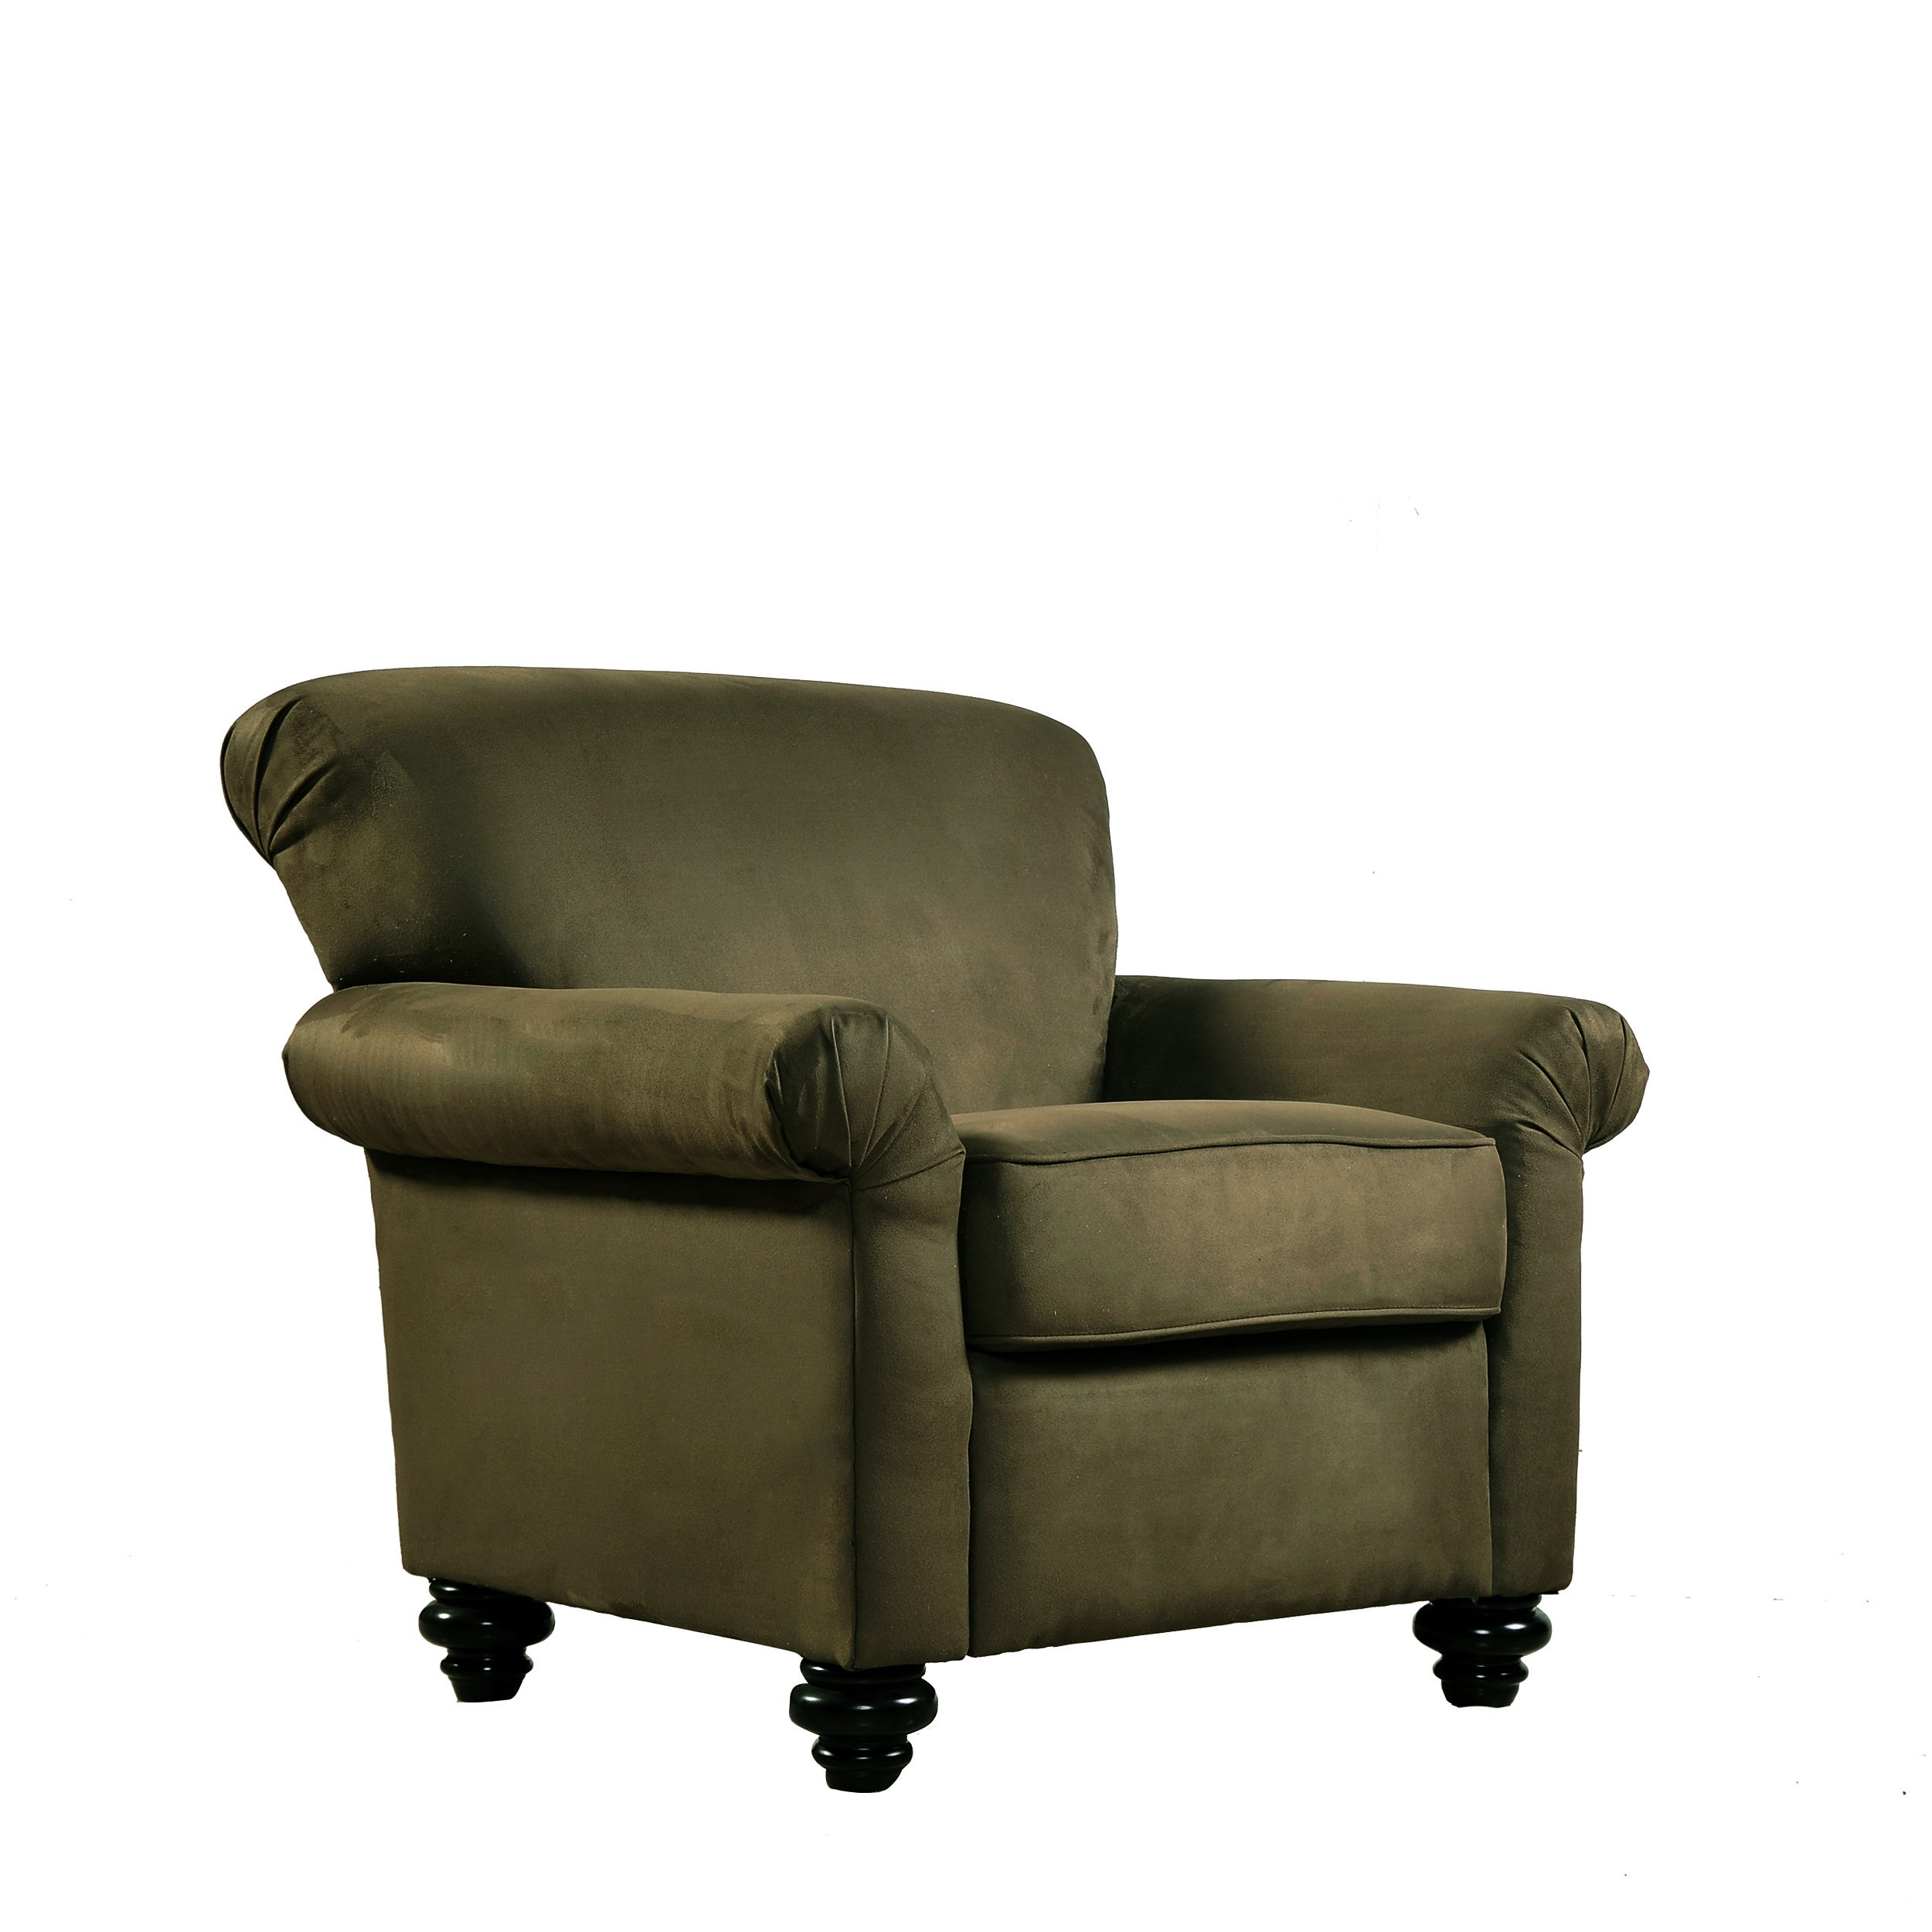 Shop Handy Living Capri Moss Green Microfiber Arm Chair And Ottoman   On  Sale   Free Shipping Today   Overstock.com   3281661